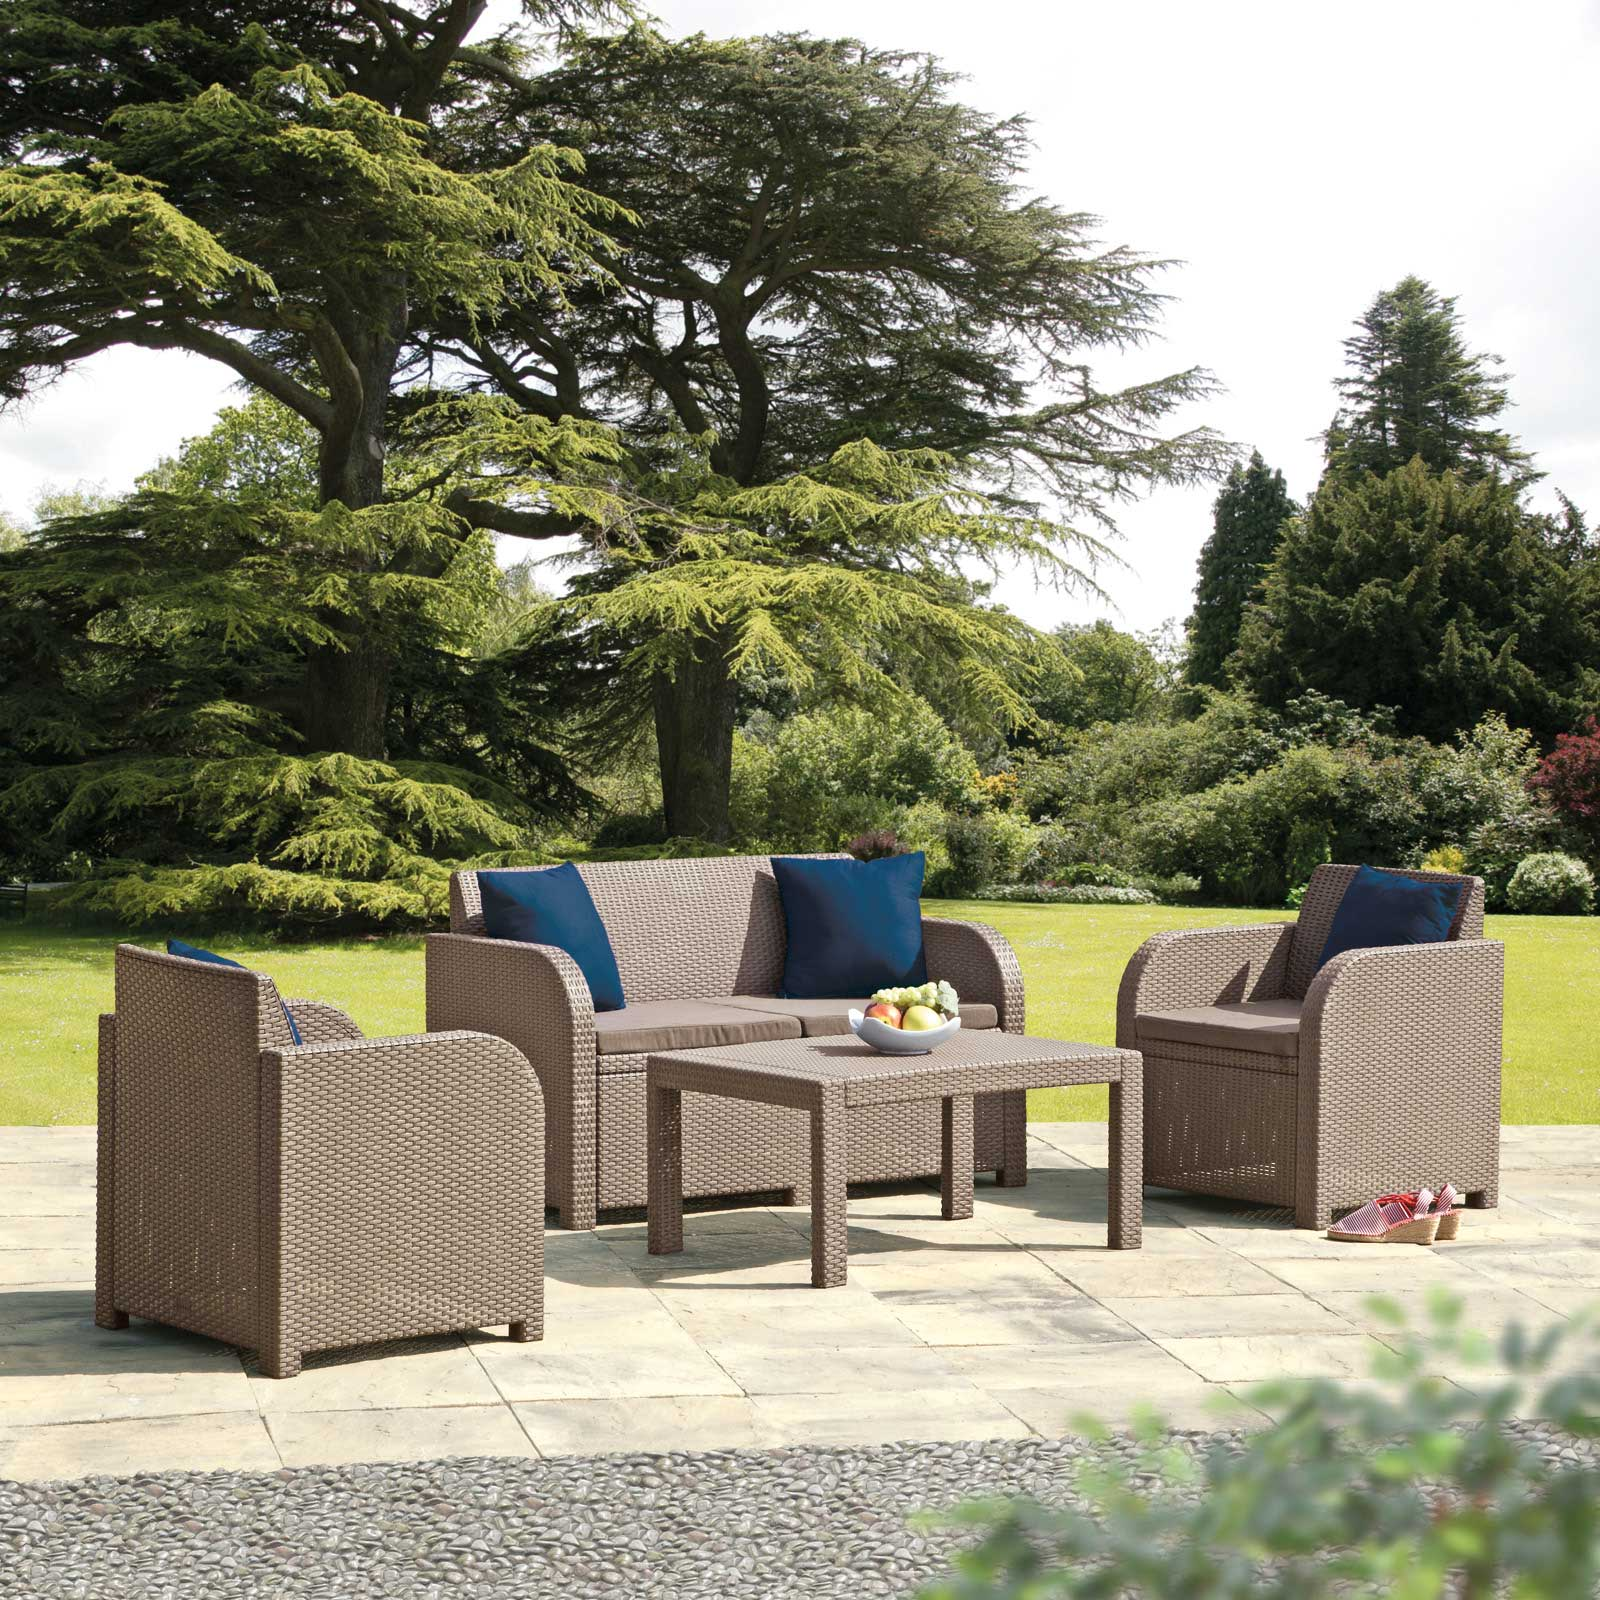 Allibert Carolina Garden Lounge Furniture Set